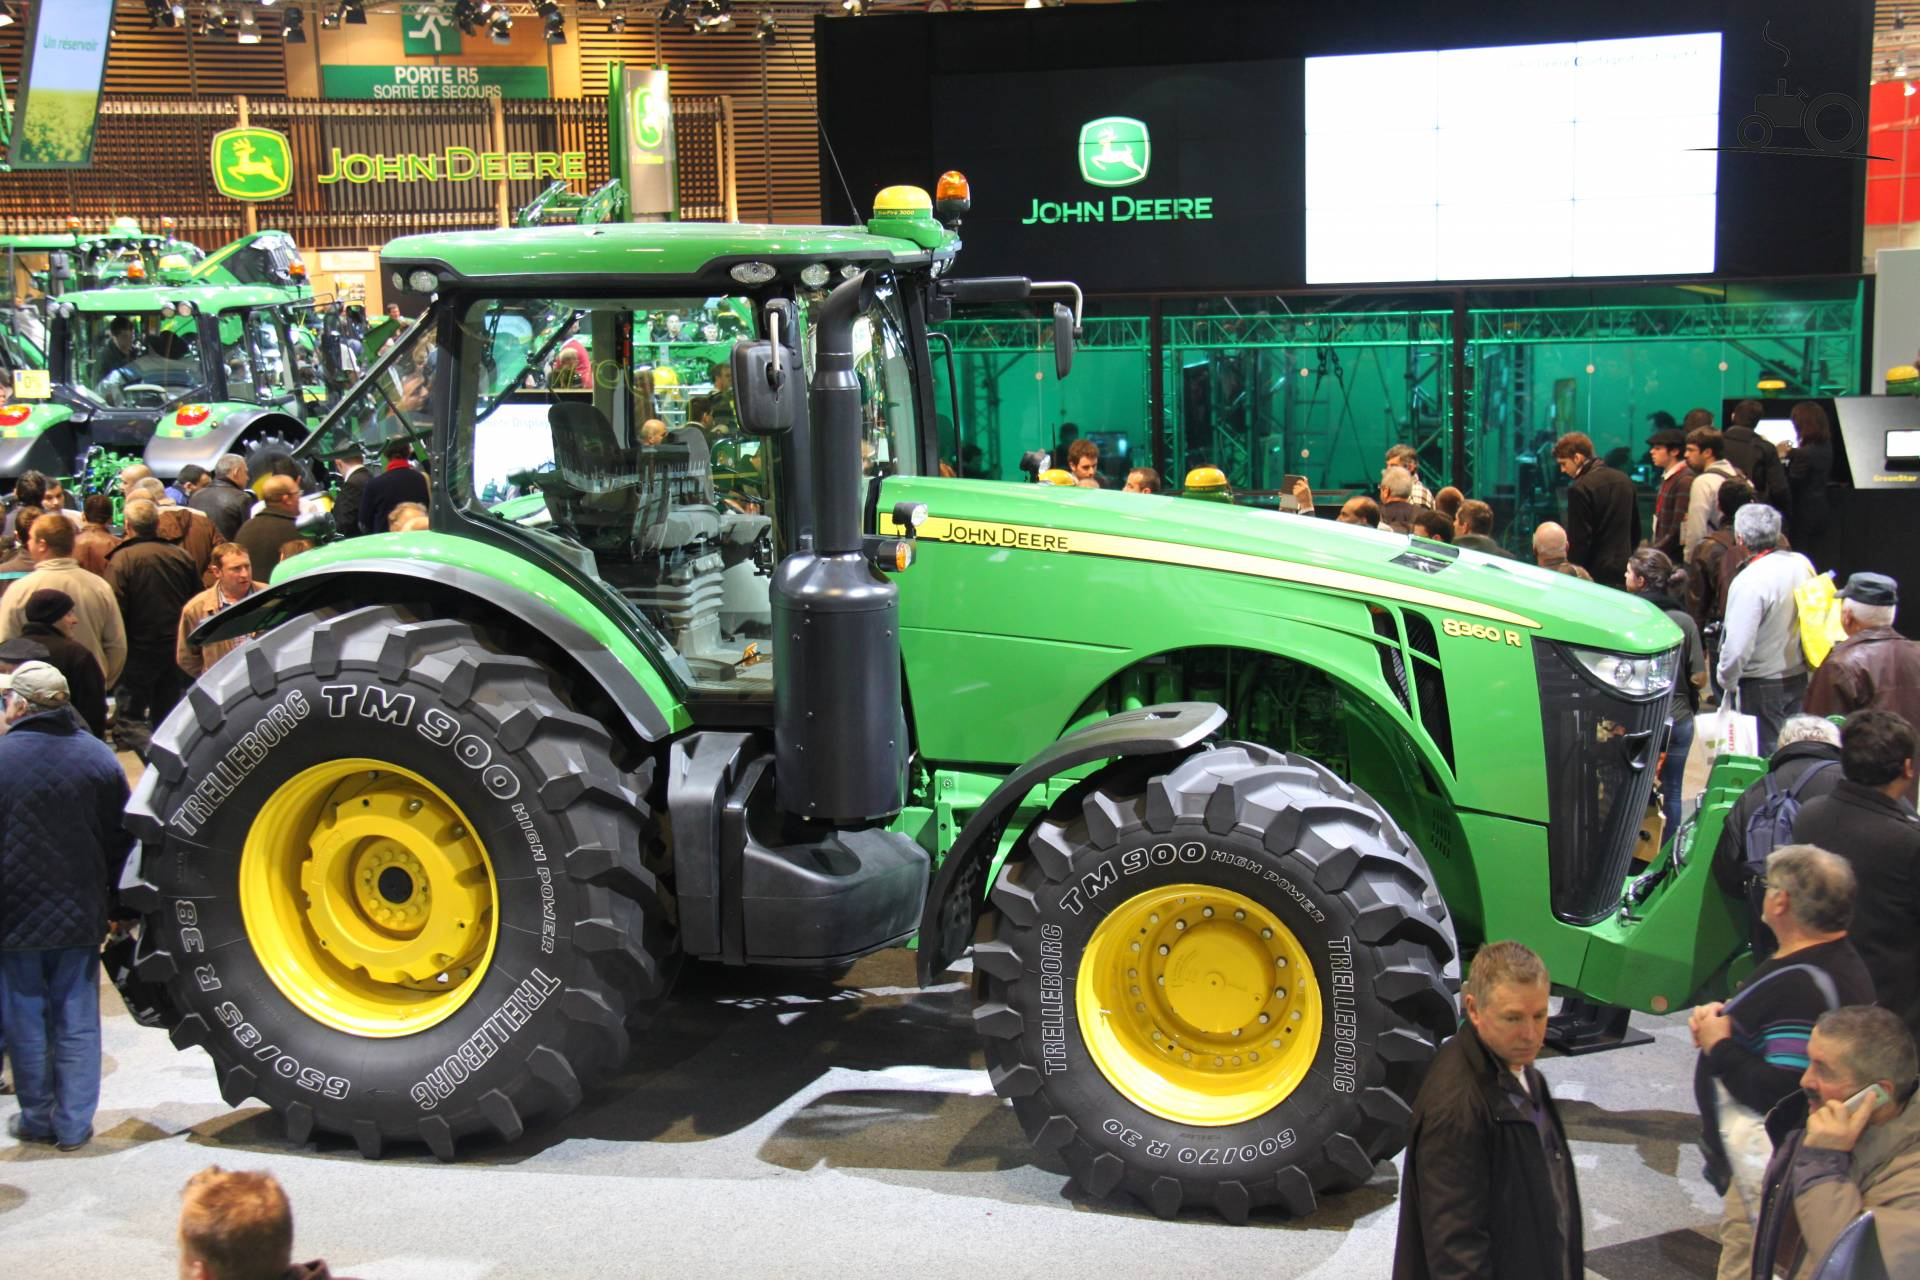 john deere int trade paper Finance sales and leases of equipment by john deere dealers and trade receivables purchased from the equipment operations the agriculture division generated 64% of deere's $258 billion in net sales in 2008, with the.